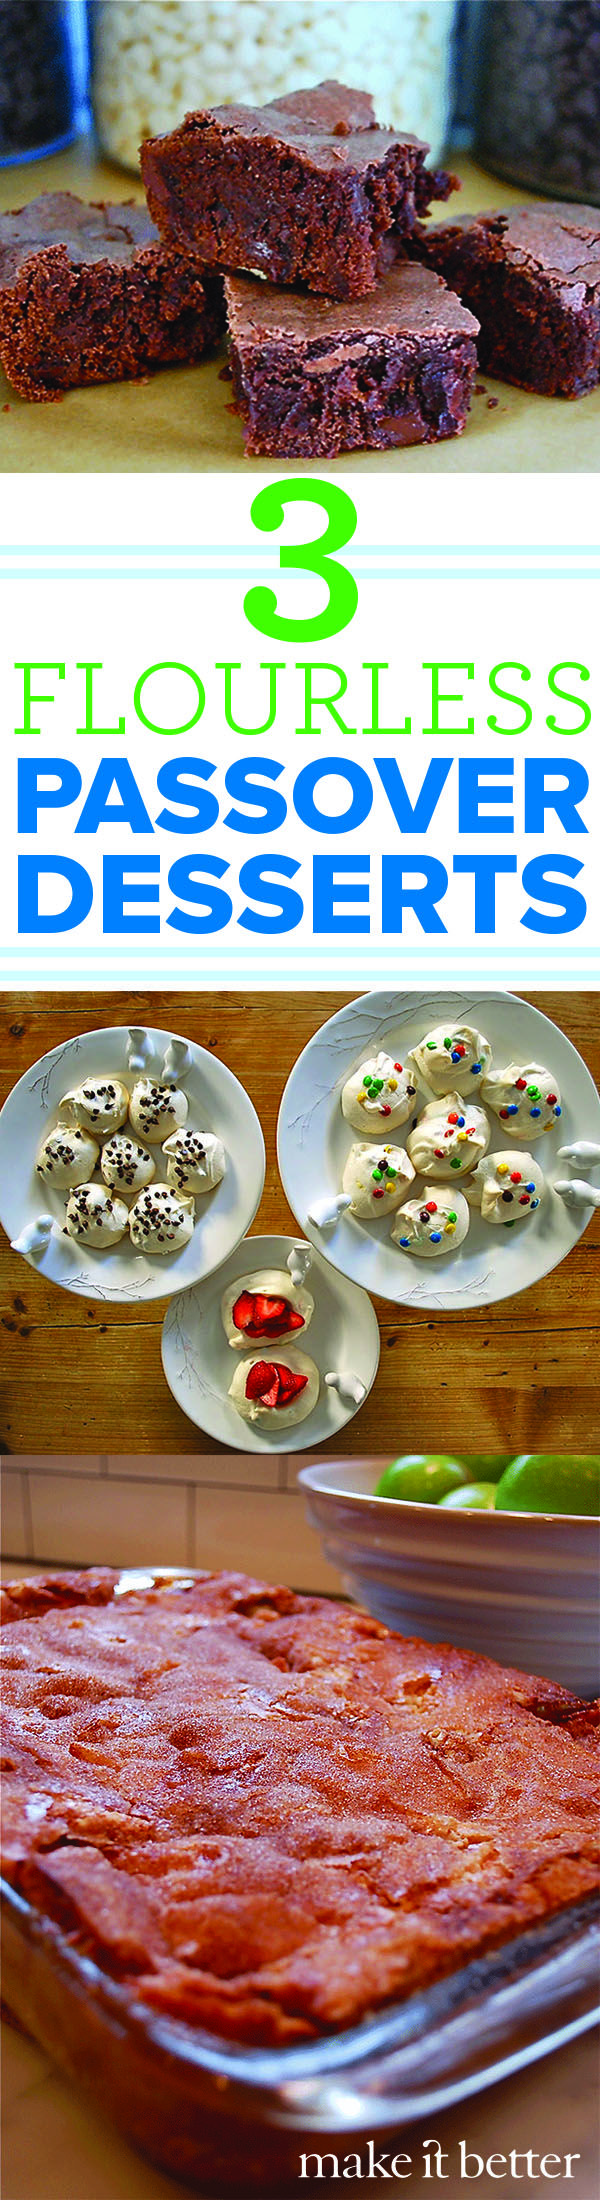 During Passover, it's forbidden to eat leavened food. It turns out that it's not the flour or the rise that makes desserts delicious. Here are three recipes that will wow at your Passover feast.